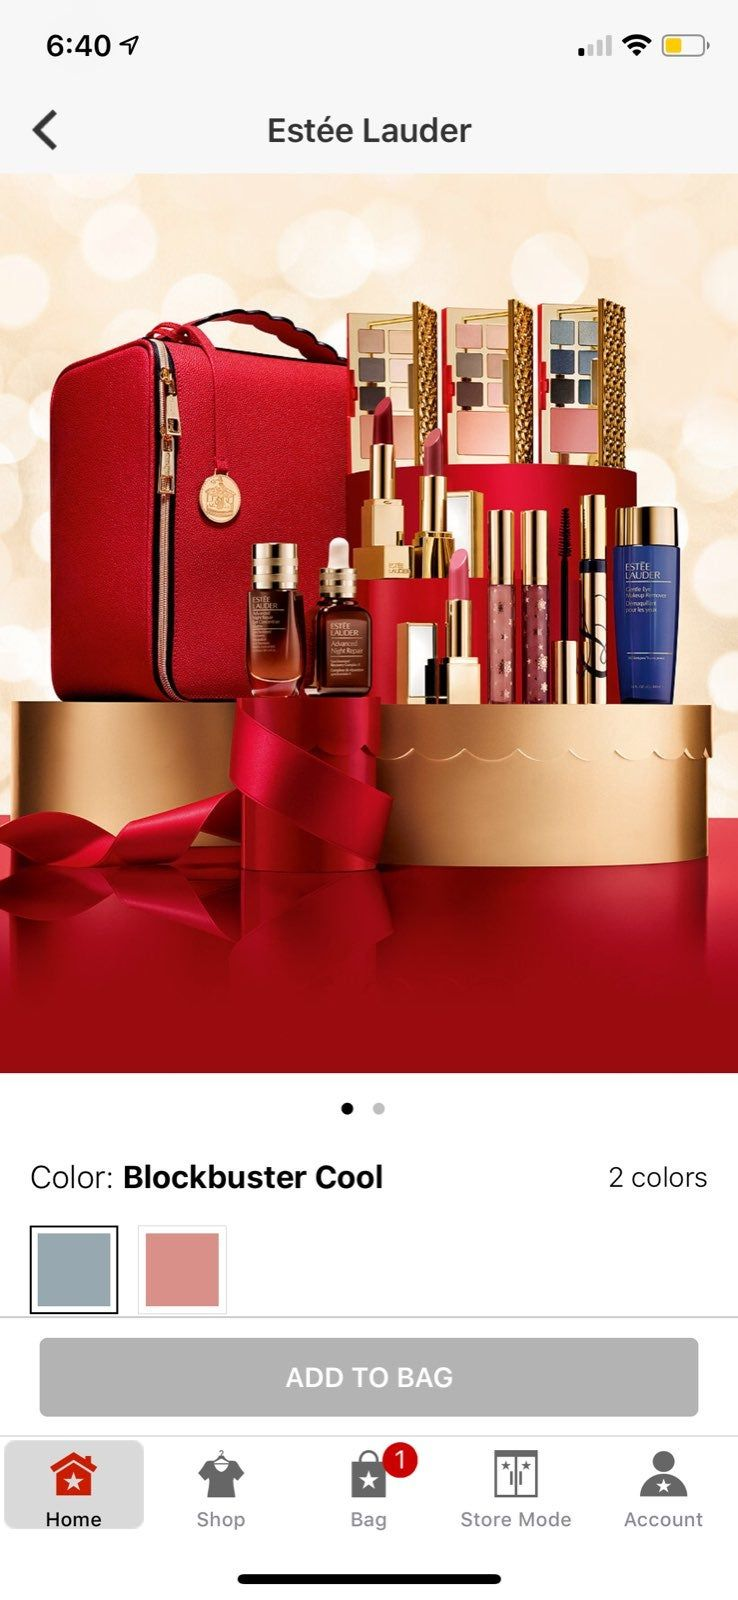 Brand New 100 Authentic Limited Edition 2018 Holiday Blockbuster Estee Lauder In Cool The Retail Value 440 Includes 12 Fu Estee Estee Lauder Bag Store